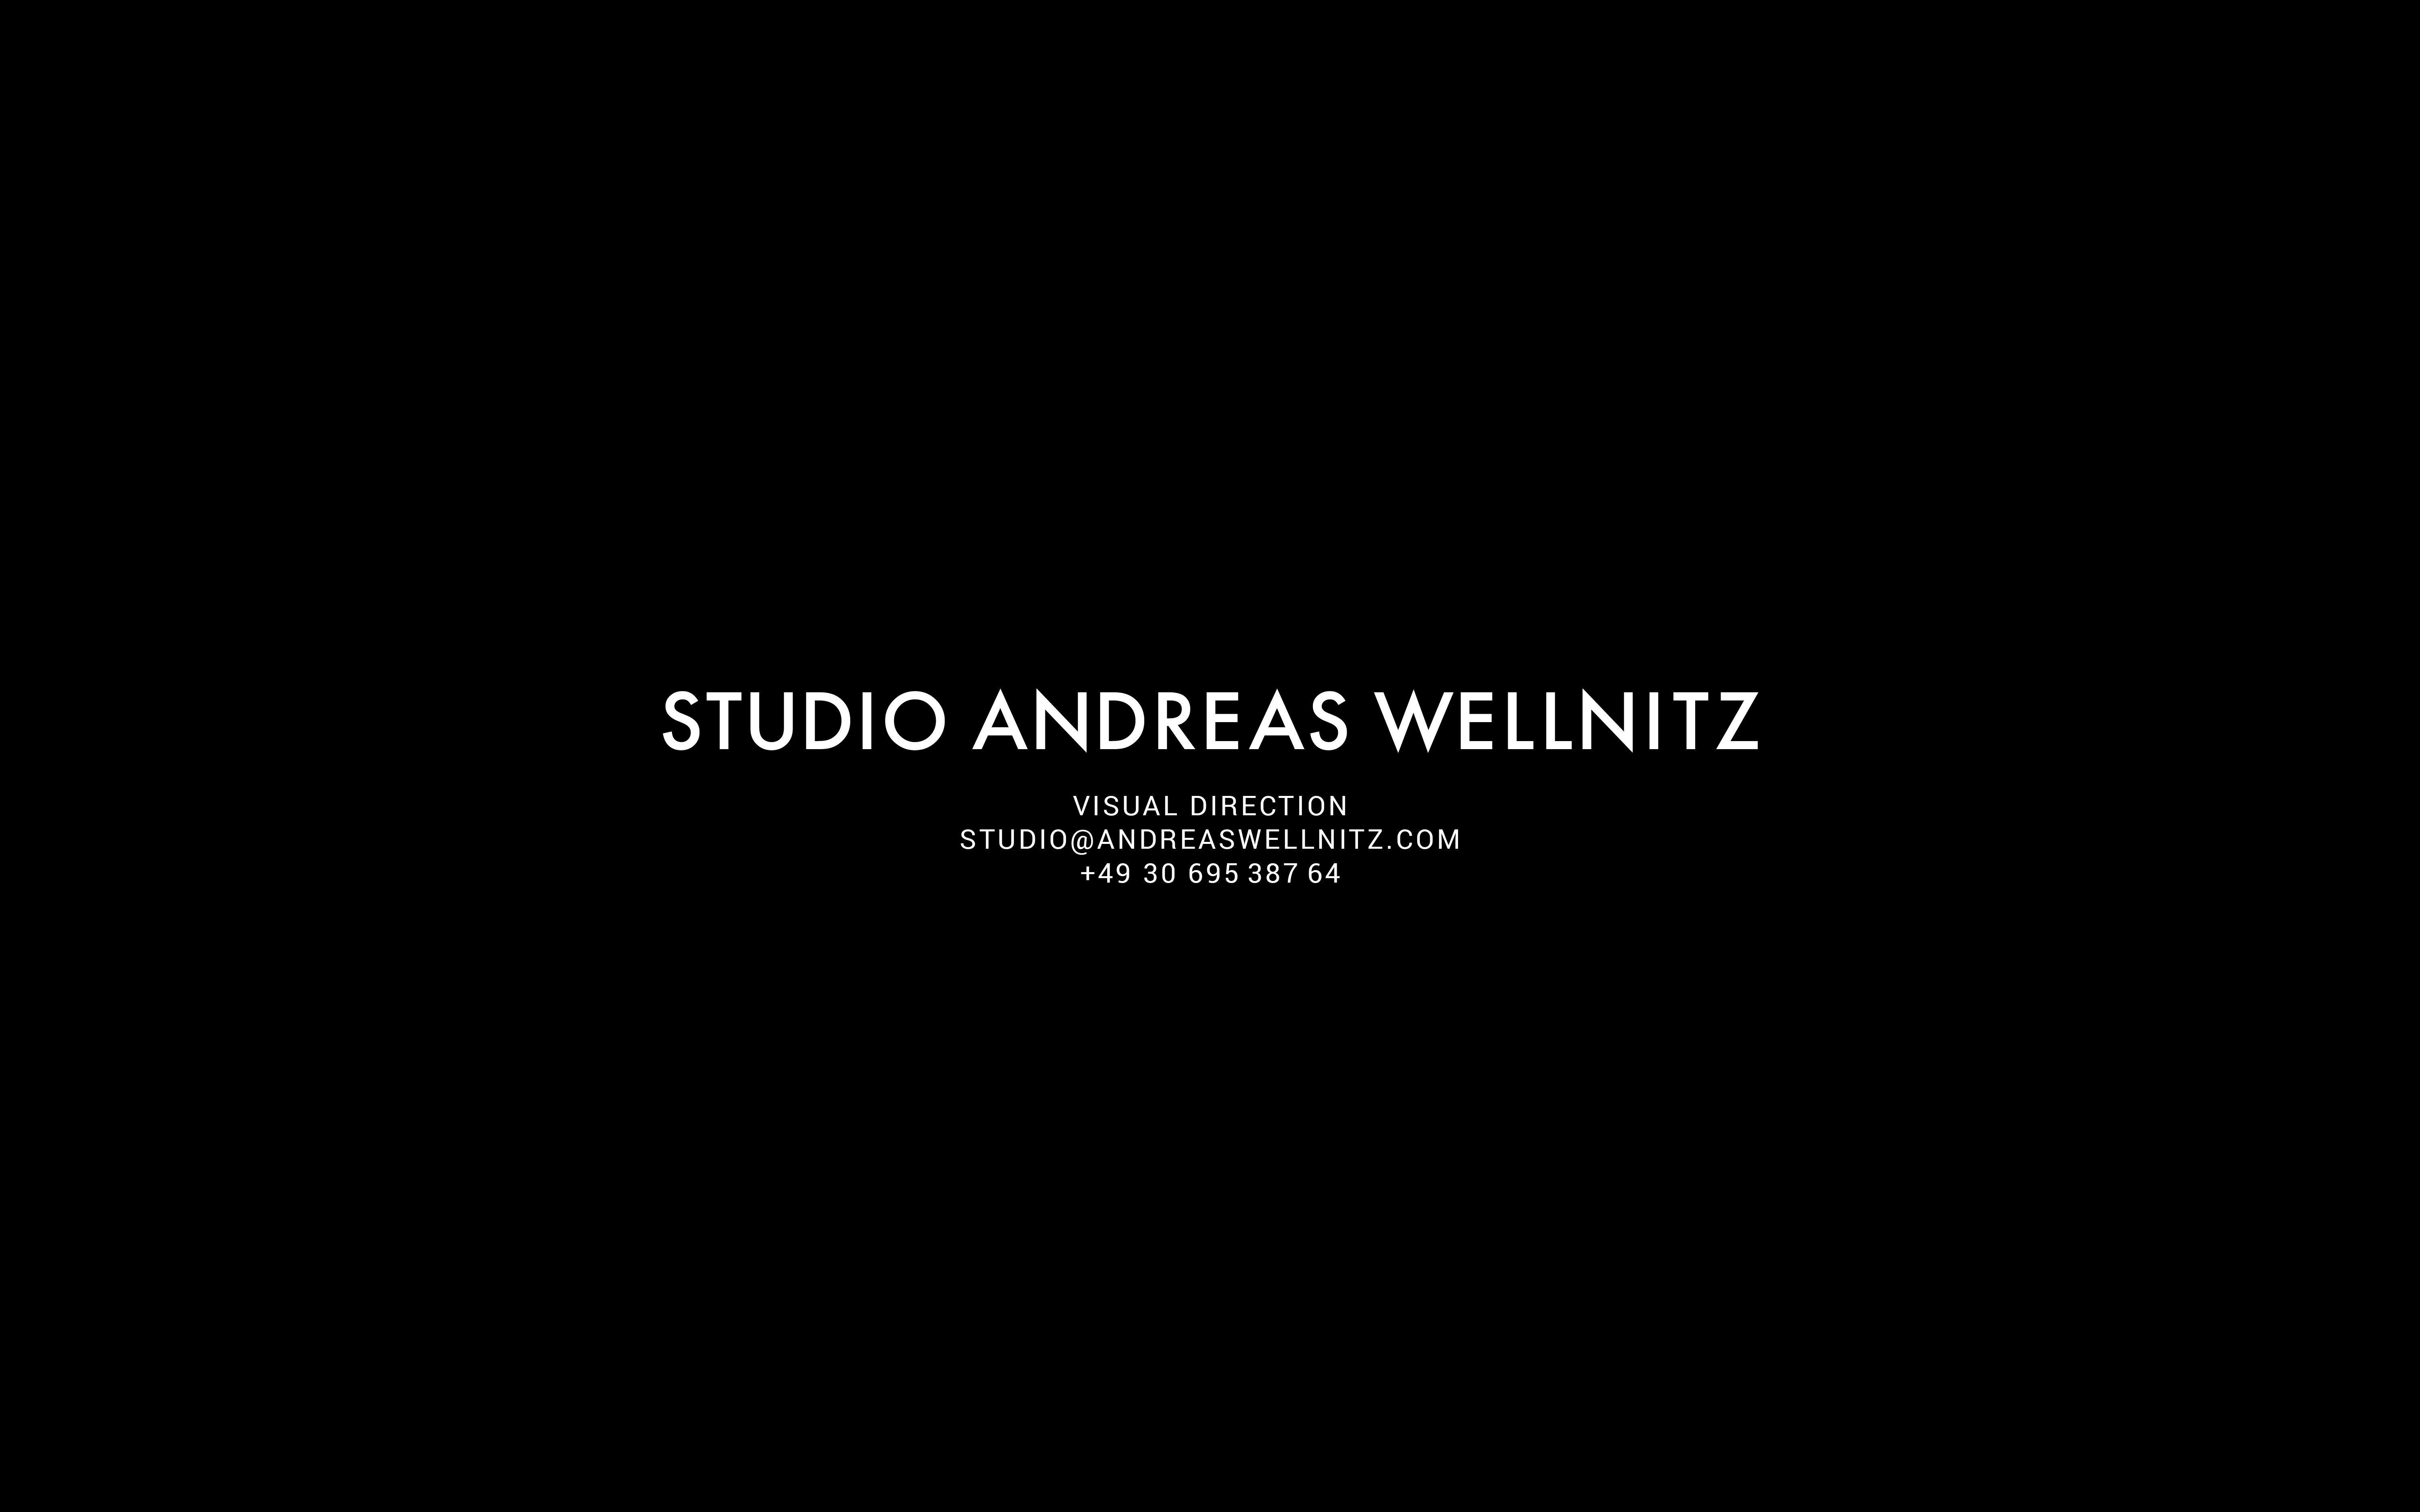 STUDIO ANDREAS WELLNITZ construction